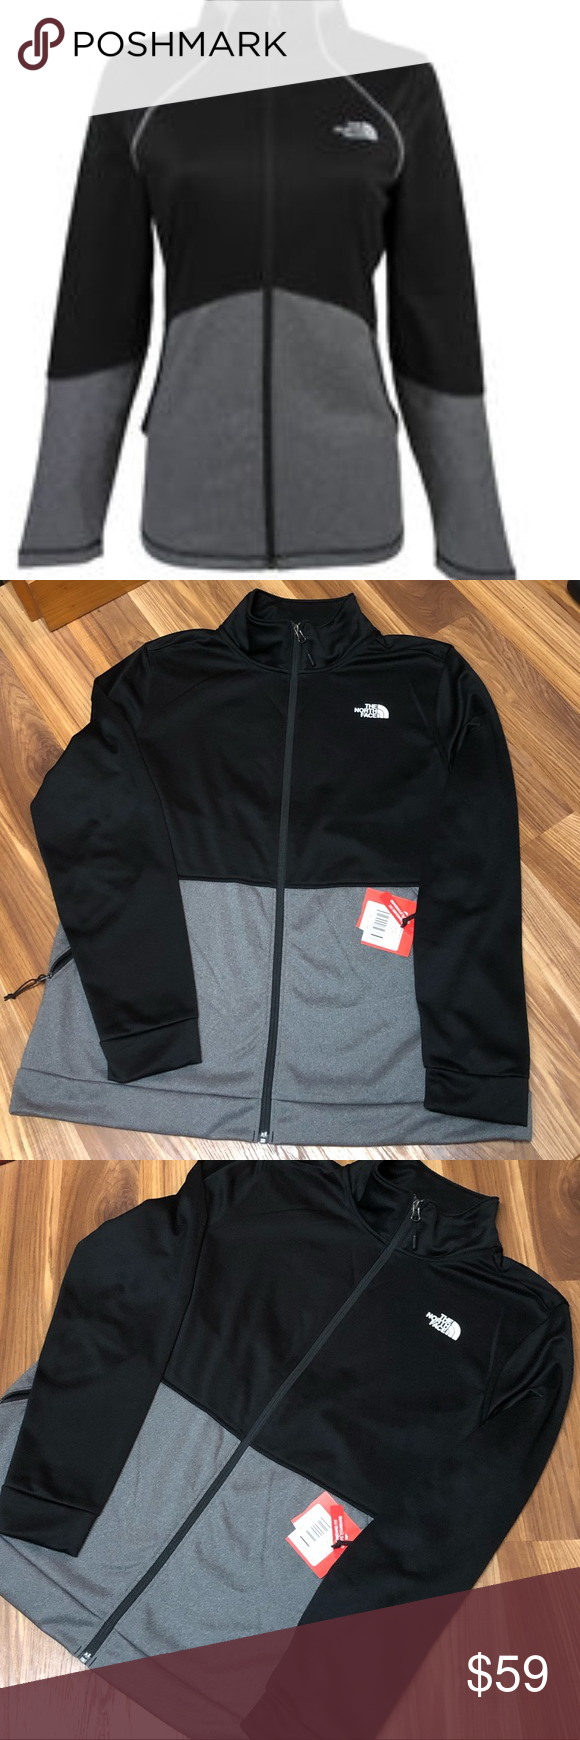 Nwt The North Face W 100 Cinder Full Zip Jacket Xl Jackets Zip Jackets North Face Jacket [ 1740 x 580 Pixel ]